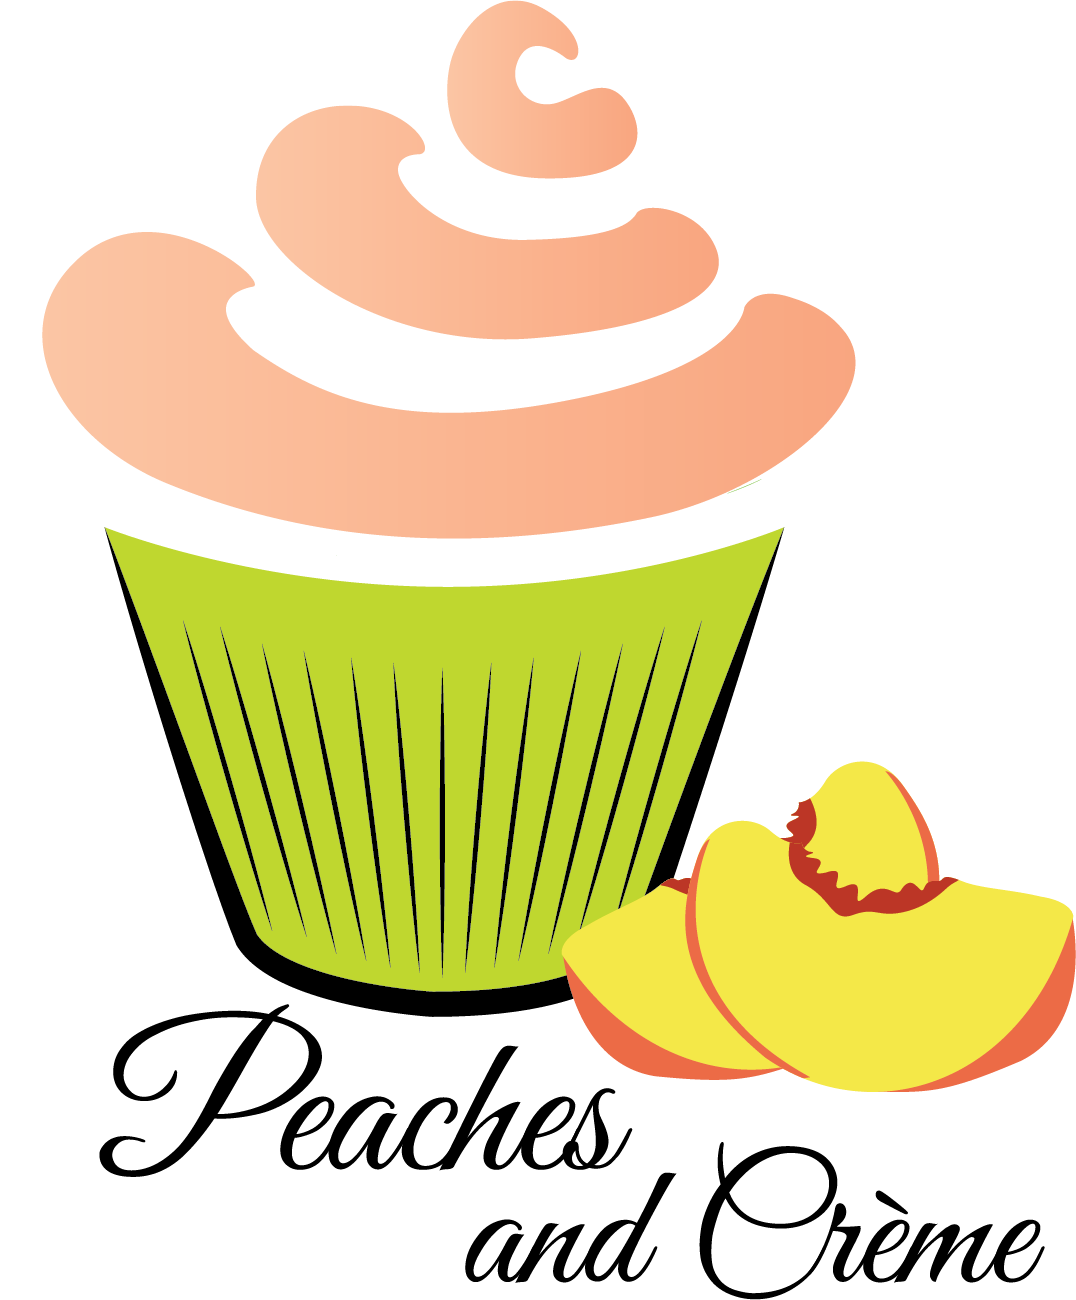 Peaches and creme bakery. Restaurants clipart pastry chef